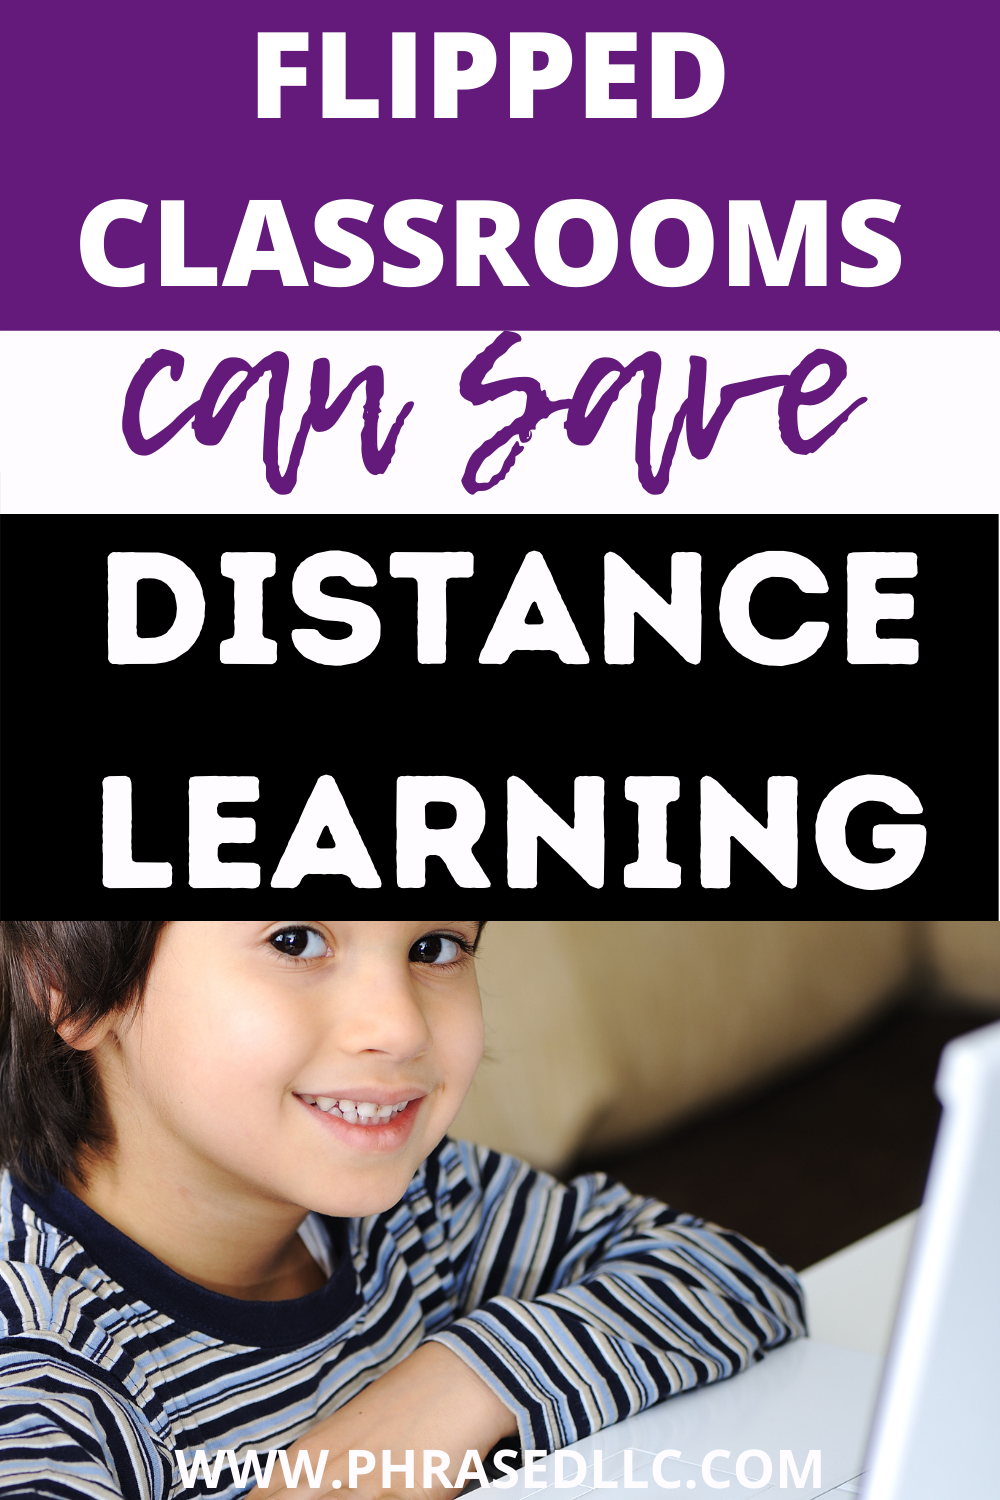 Distance learning is in trouble in our current pandemic, but flipped classrooms can save us all.